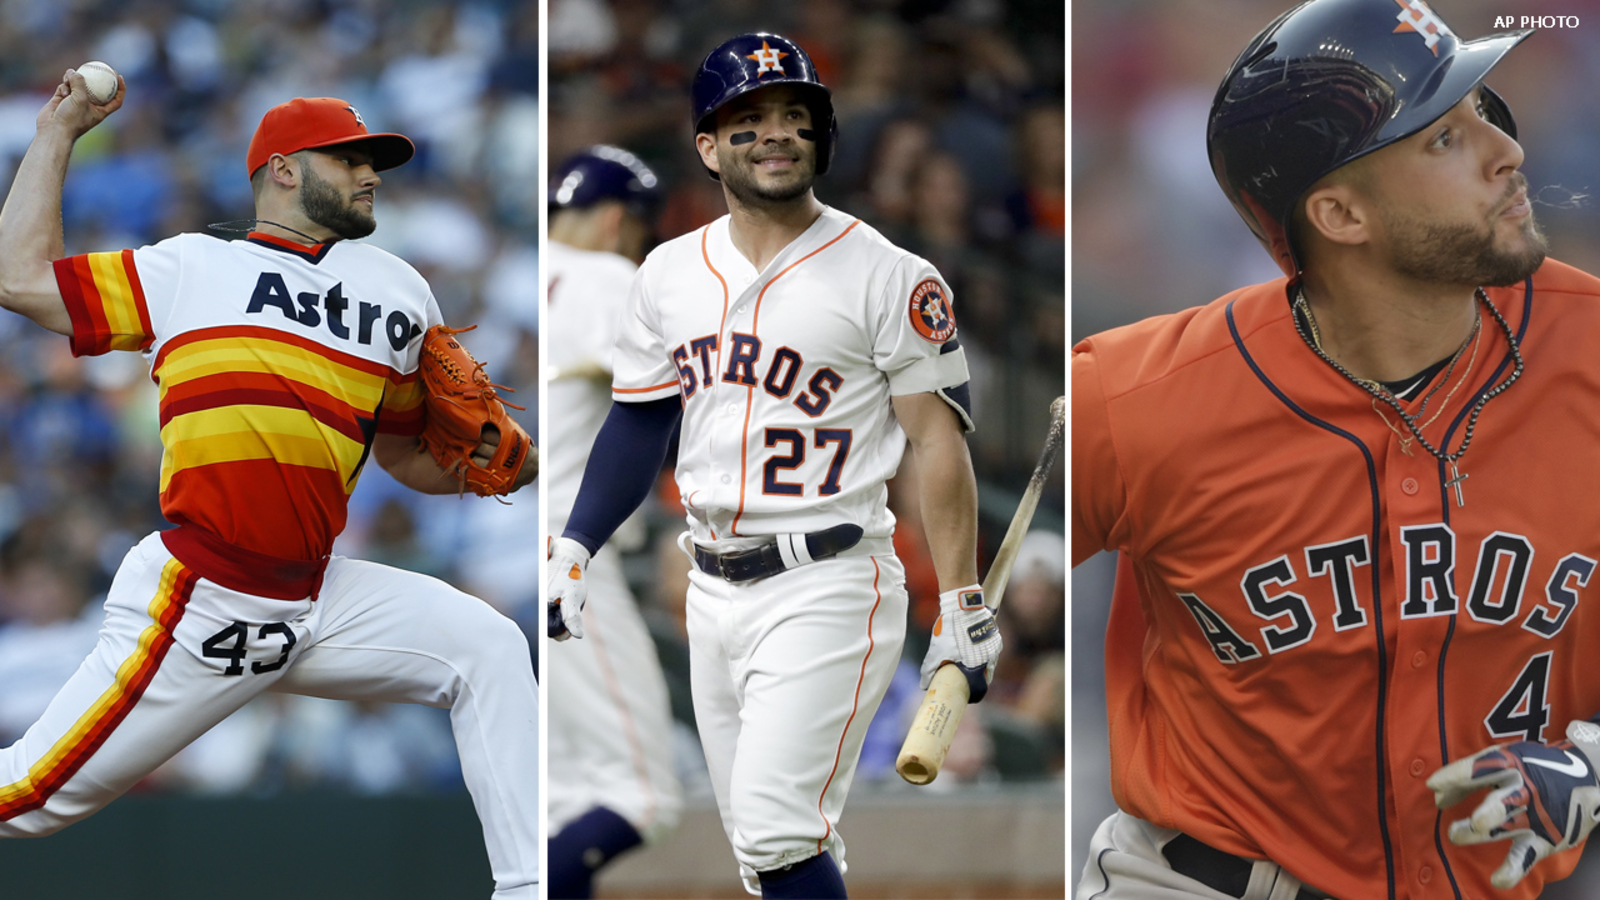 2fca964df Houston Astros have the best uniform in baseball: MLB | abc13.com